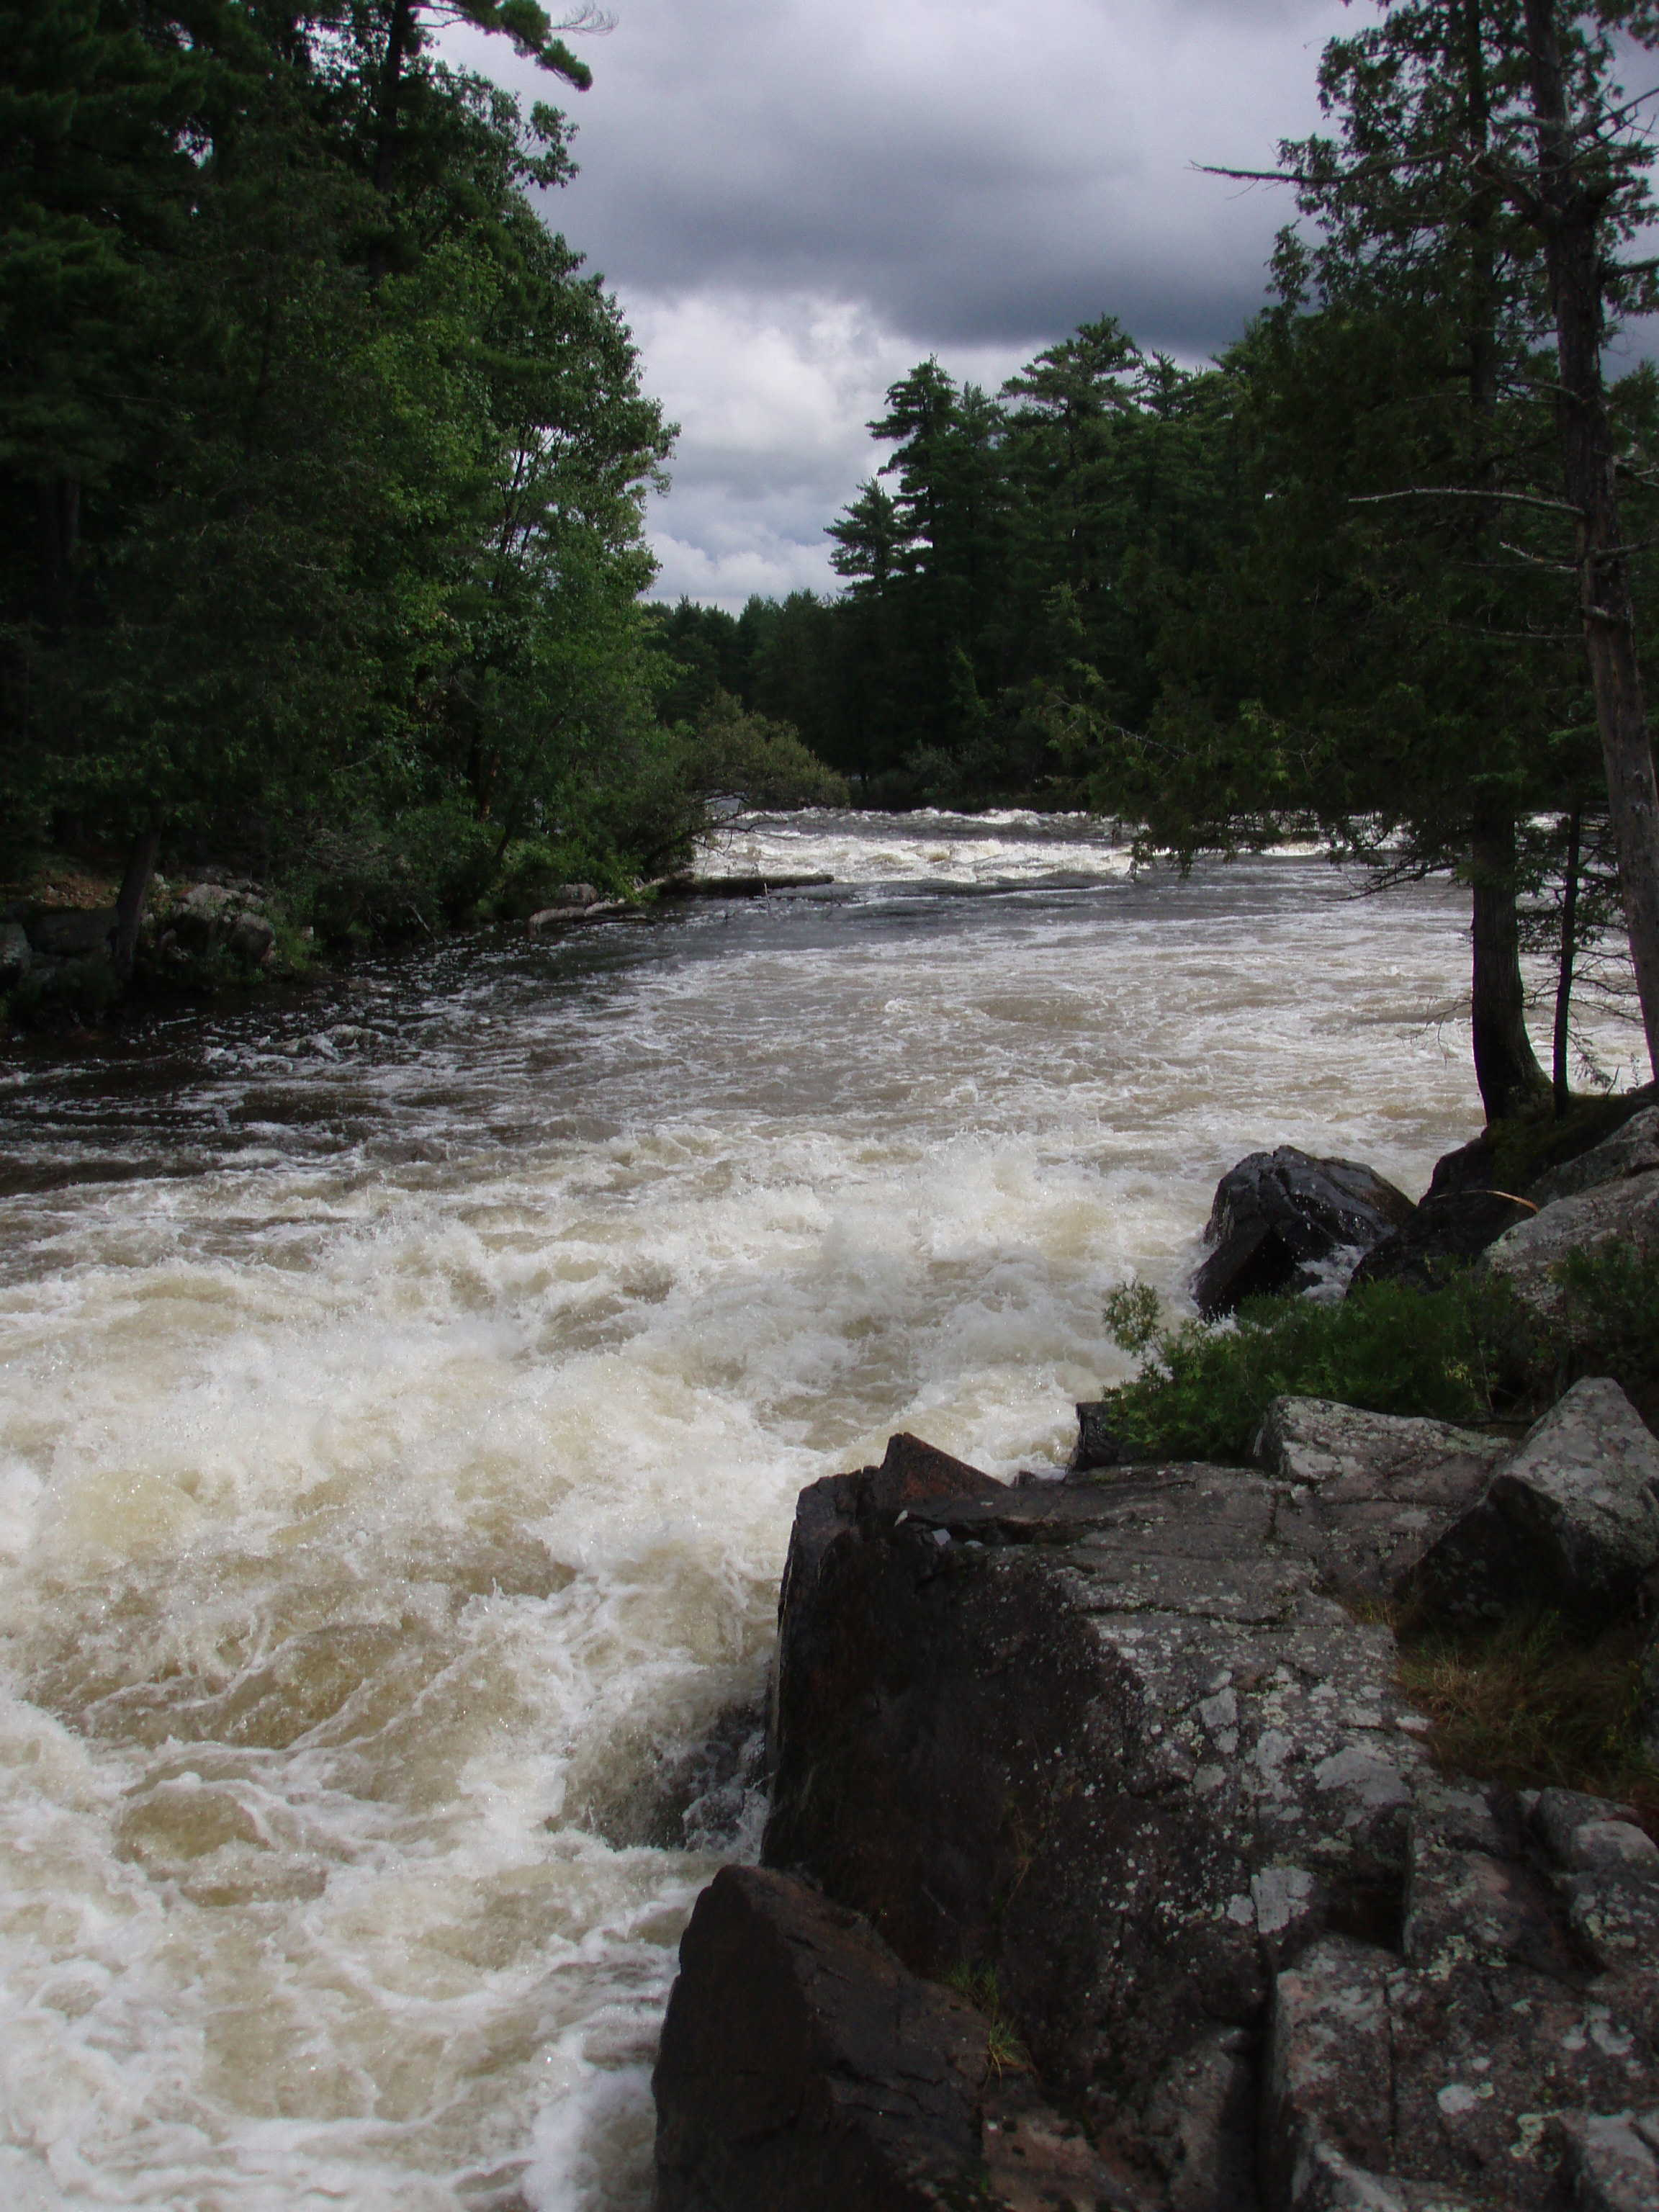 Looking downstream from runout of Iron Ring. (Photo by Keith Merkel - 8/10/08)